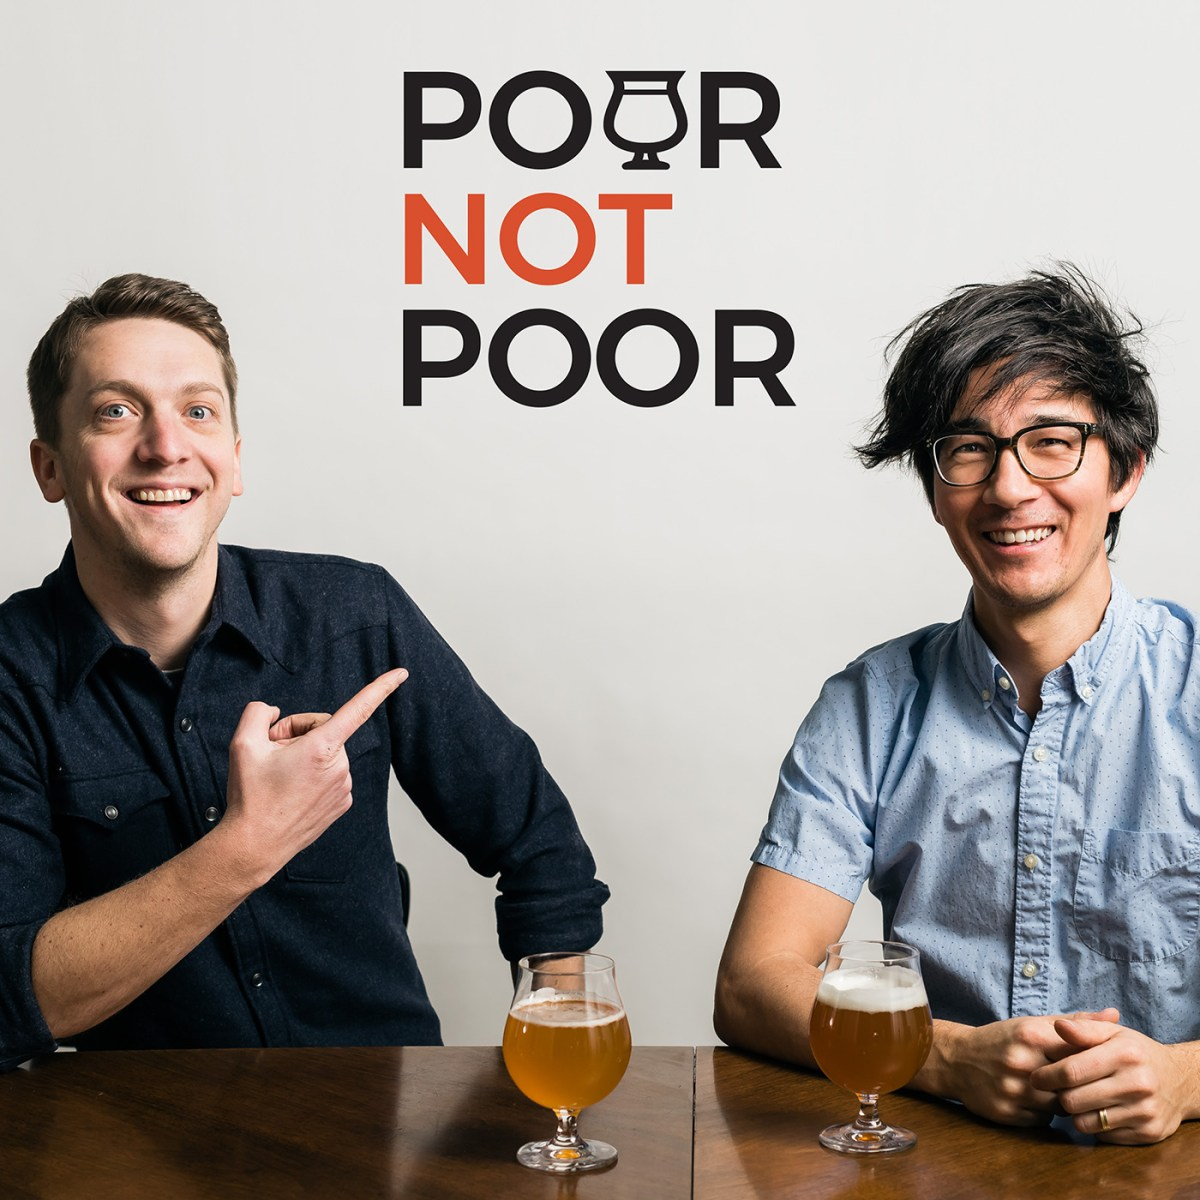 I launched a new money podcast called Pour Not Poor - Check it out!